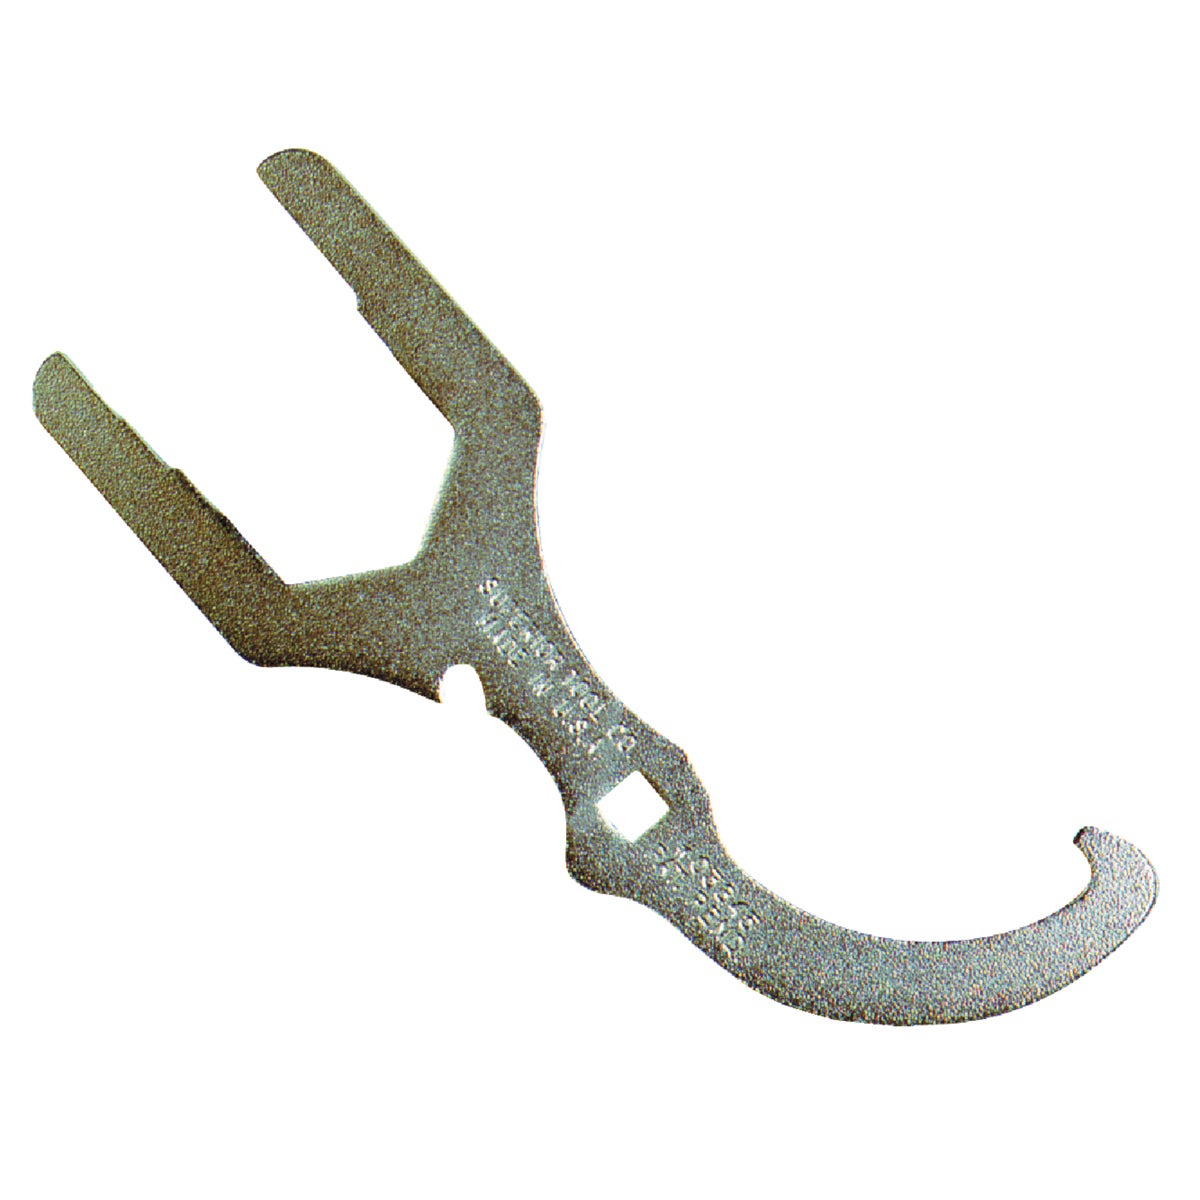 SINK DRAIN WRENCH - 03845 by Superior Tool Co